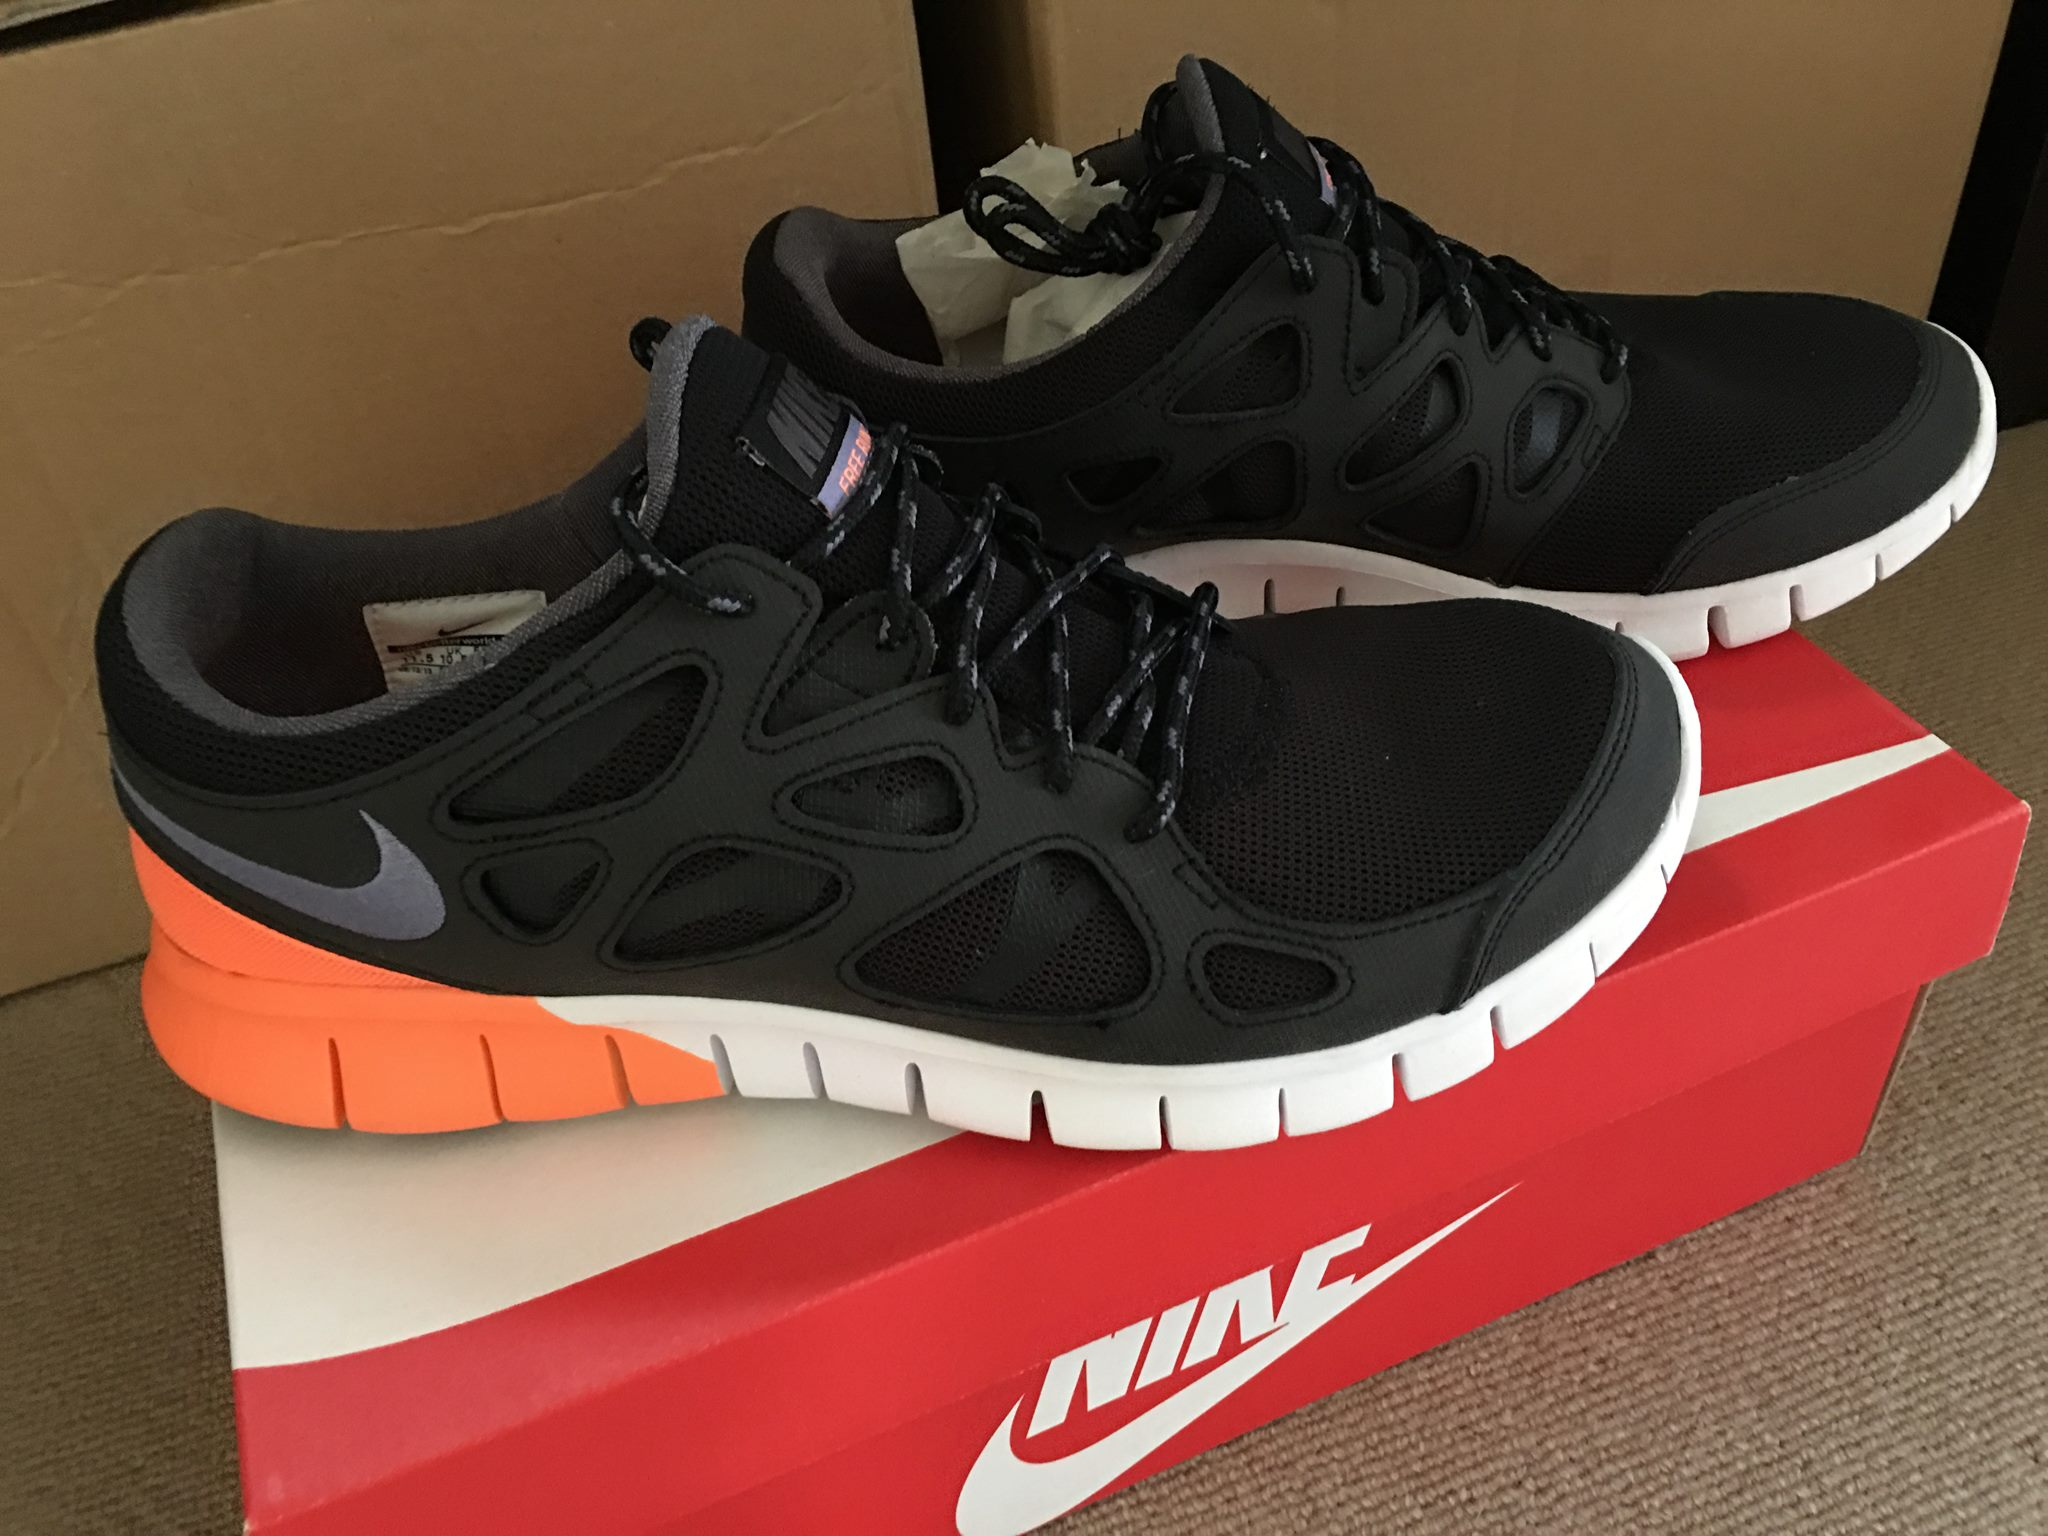 Qualité supérieure b59c7 80902 Nike Free Run 2 Couple Colours To Choose From